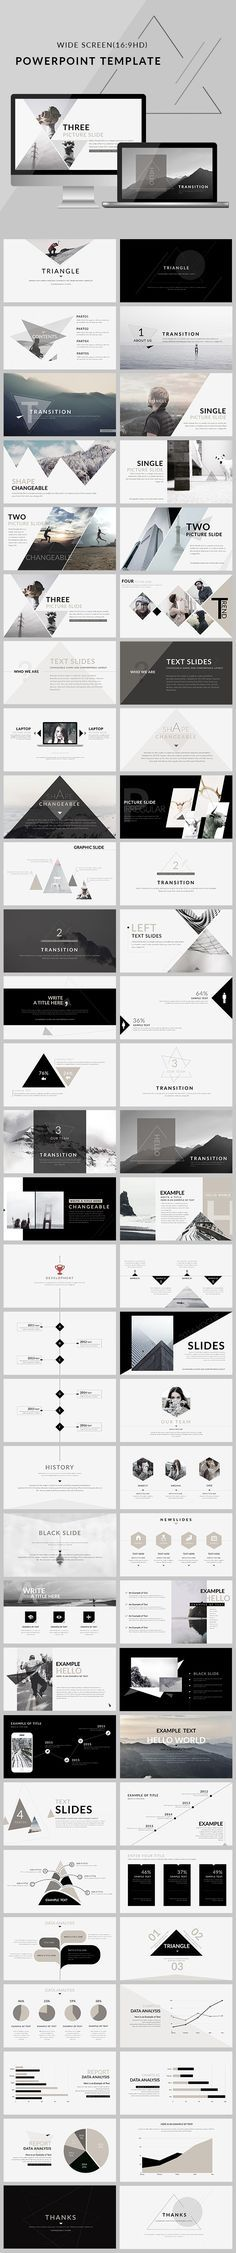 Triangle - Clean trend PowerPoint Presentation Template. Download here: https://graphicriver.net/item/triangle-clean-trend-powerpoint-presentation/17165873?ref=ksioks